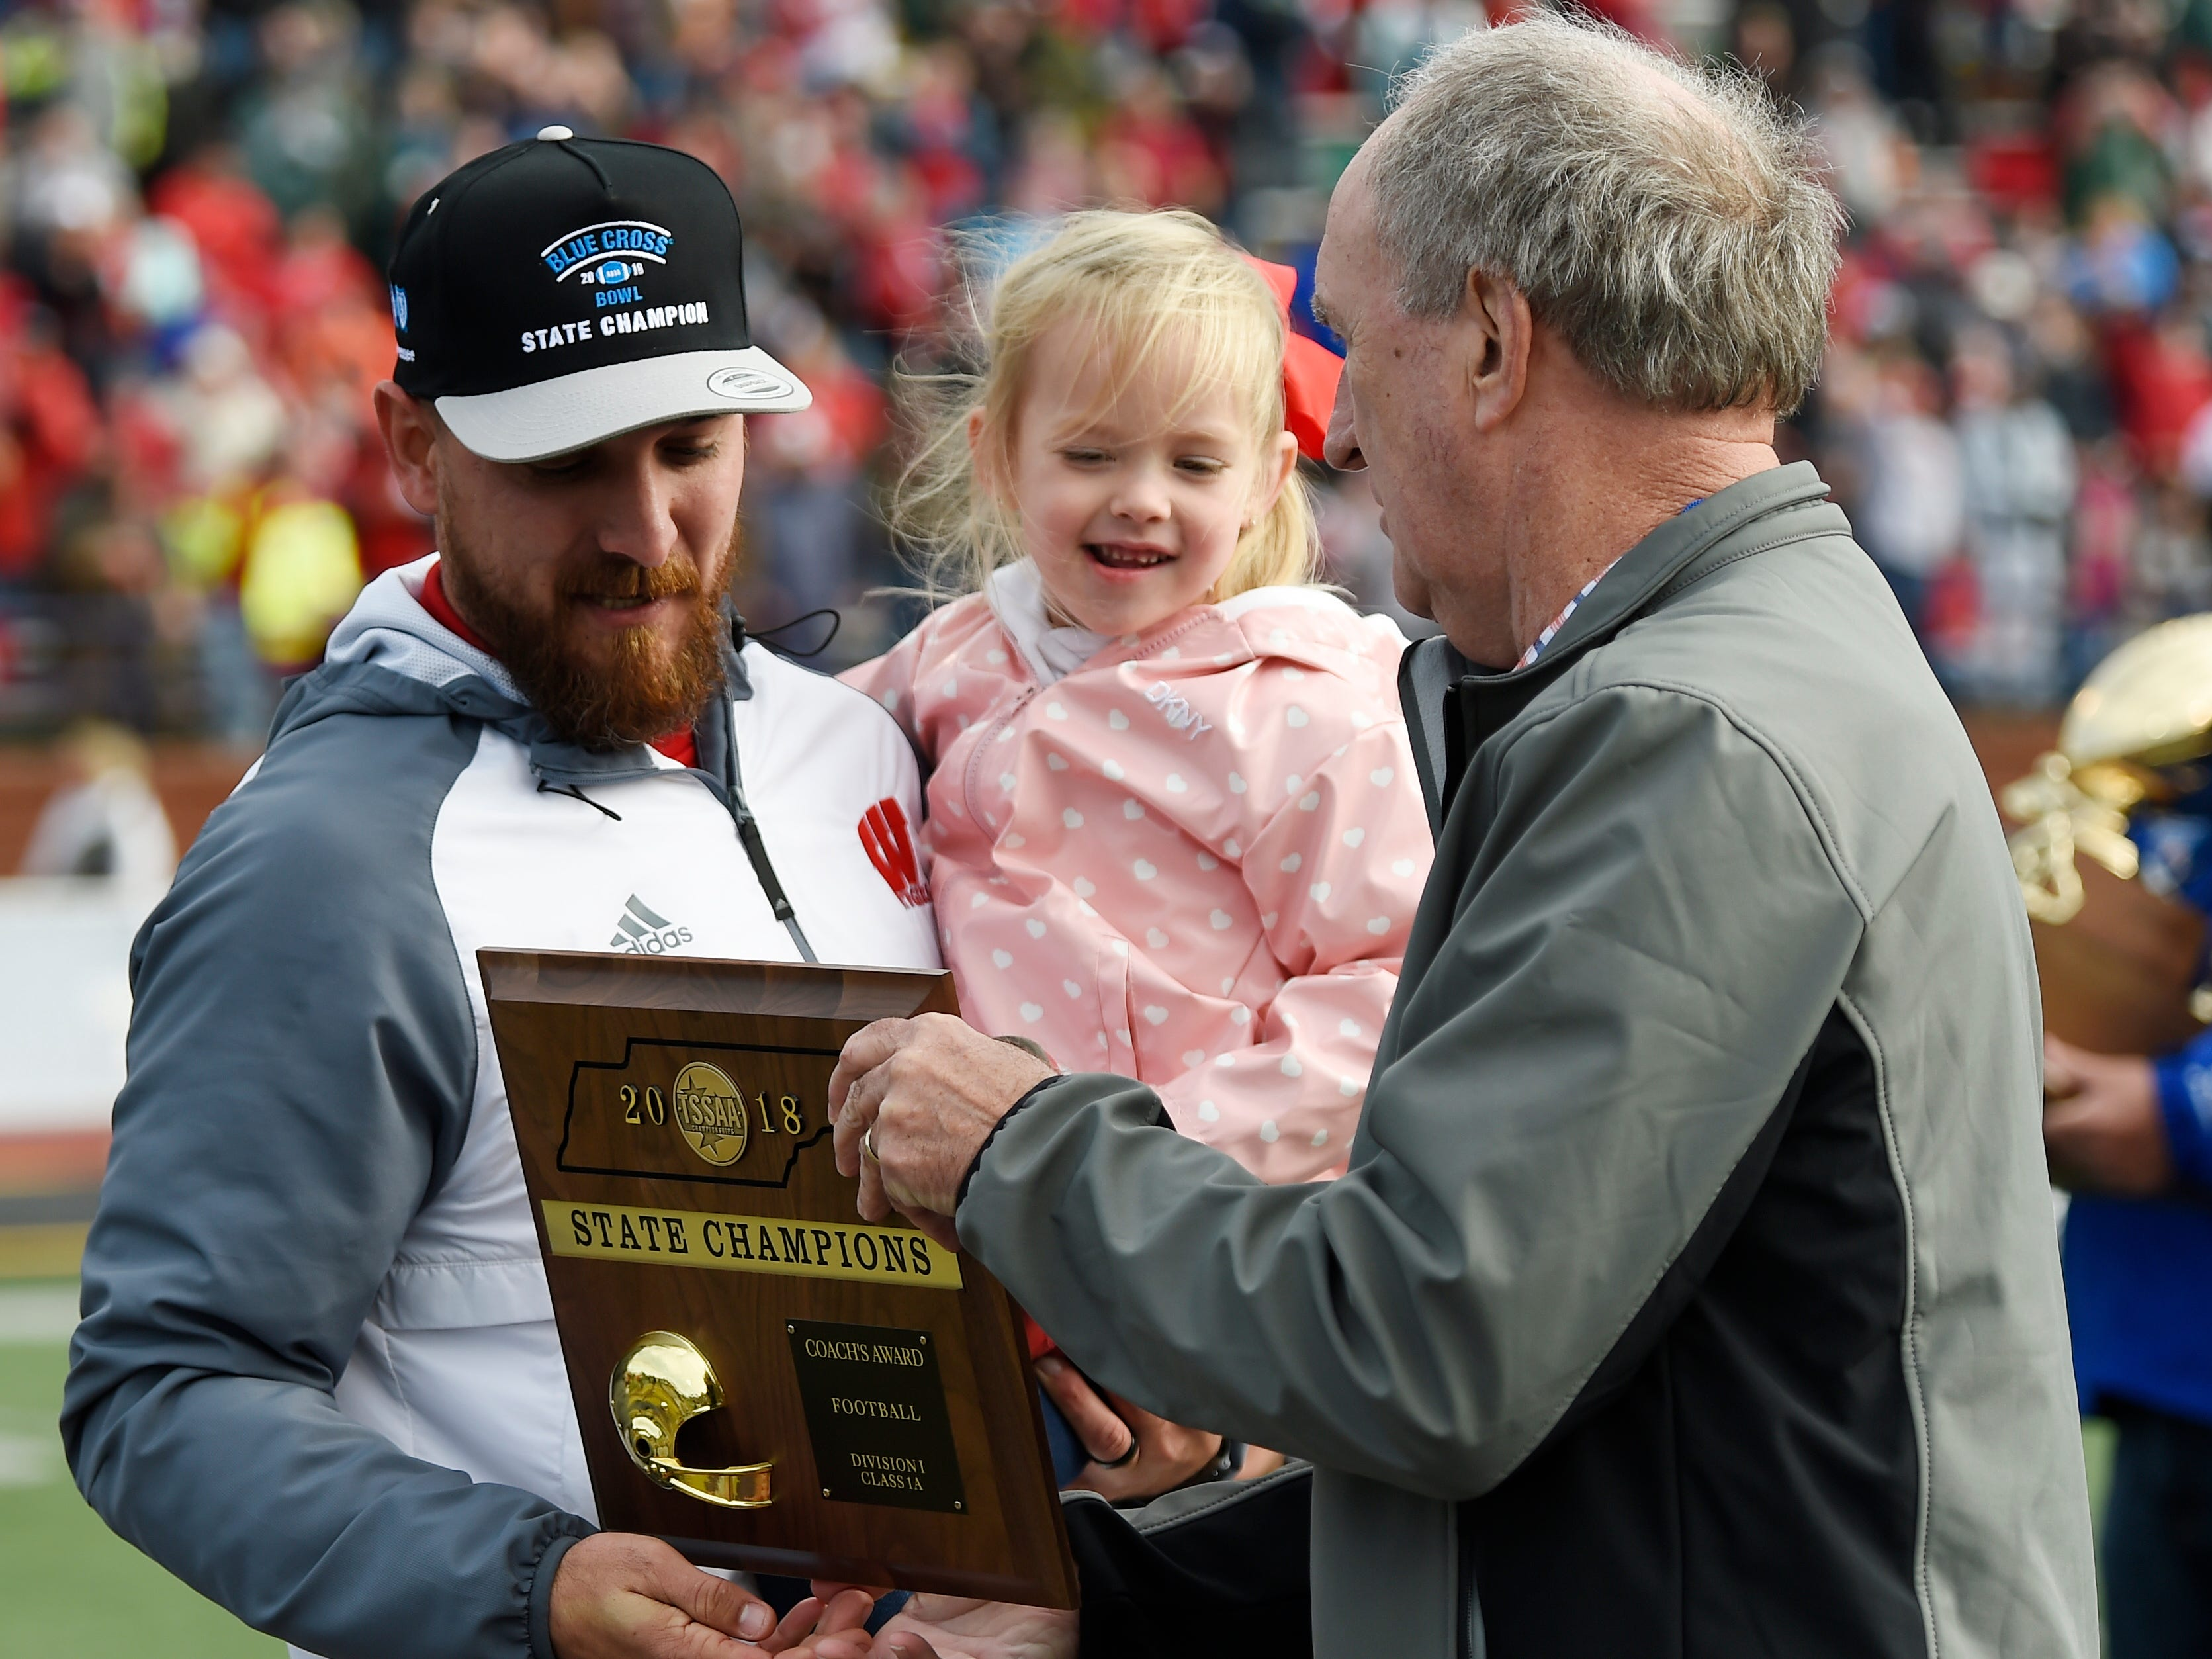 Whitwell head coach Randall Boldin accepts the championship trophy at the Class I-A BlueCross Bowl state championship at Tennessee Tech's Tucker Stadium in Cookeville, Tenn., on Saturday, Dec. 1, 2018.